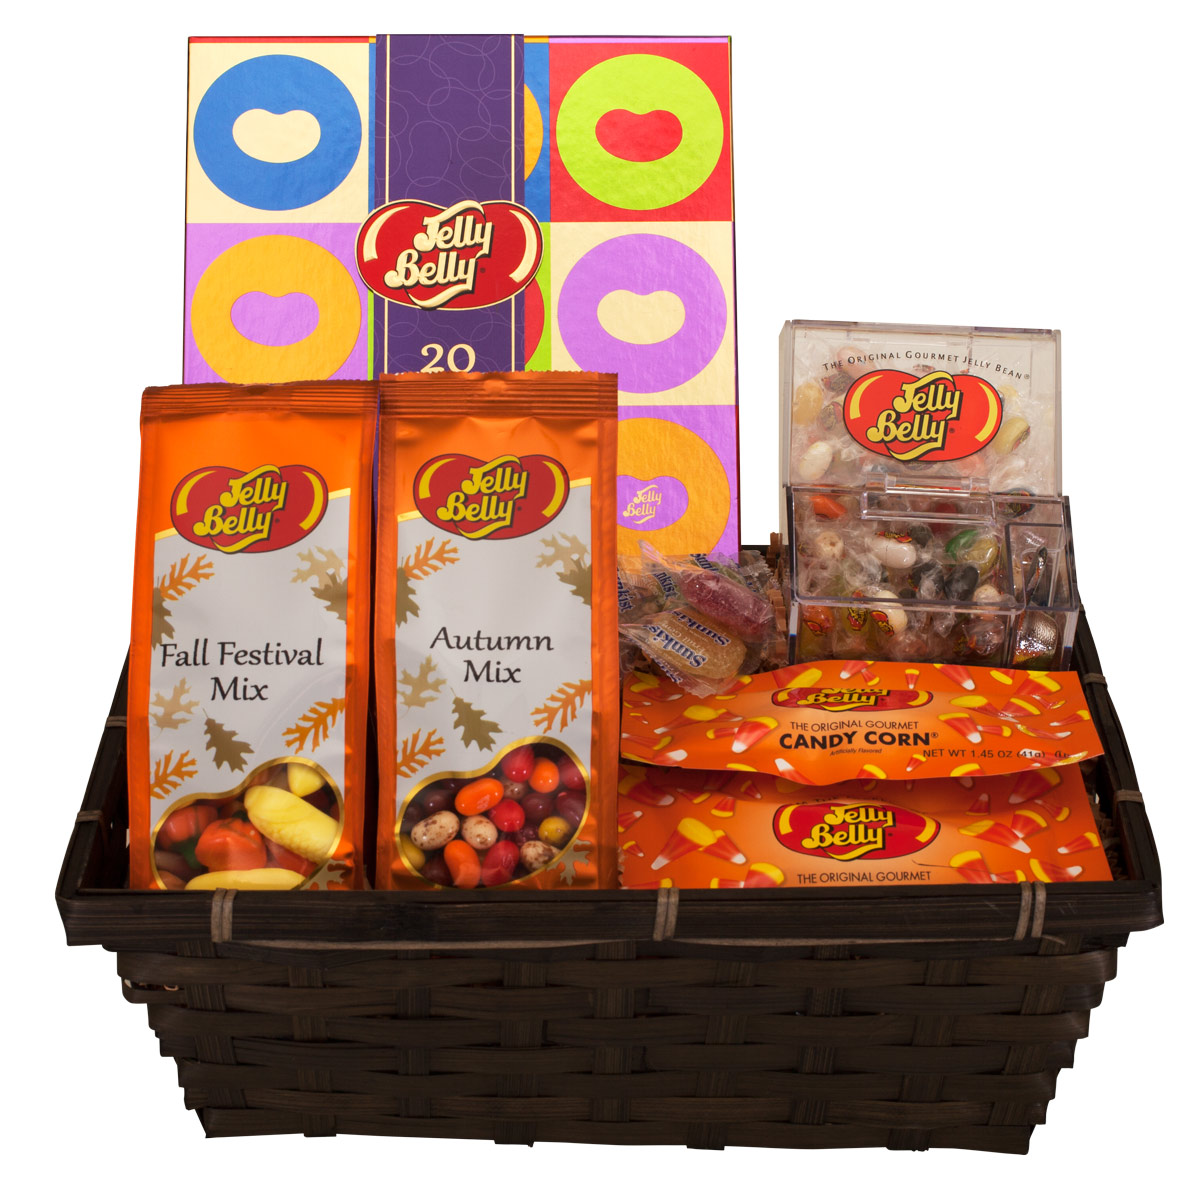 The Harvest Sweets Gift Basket